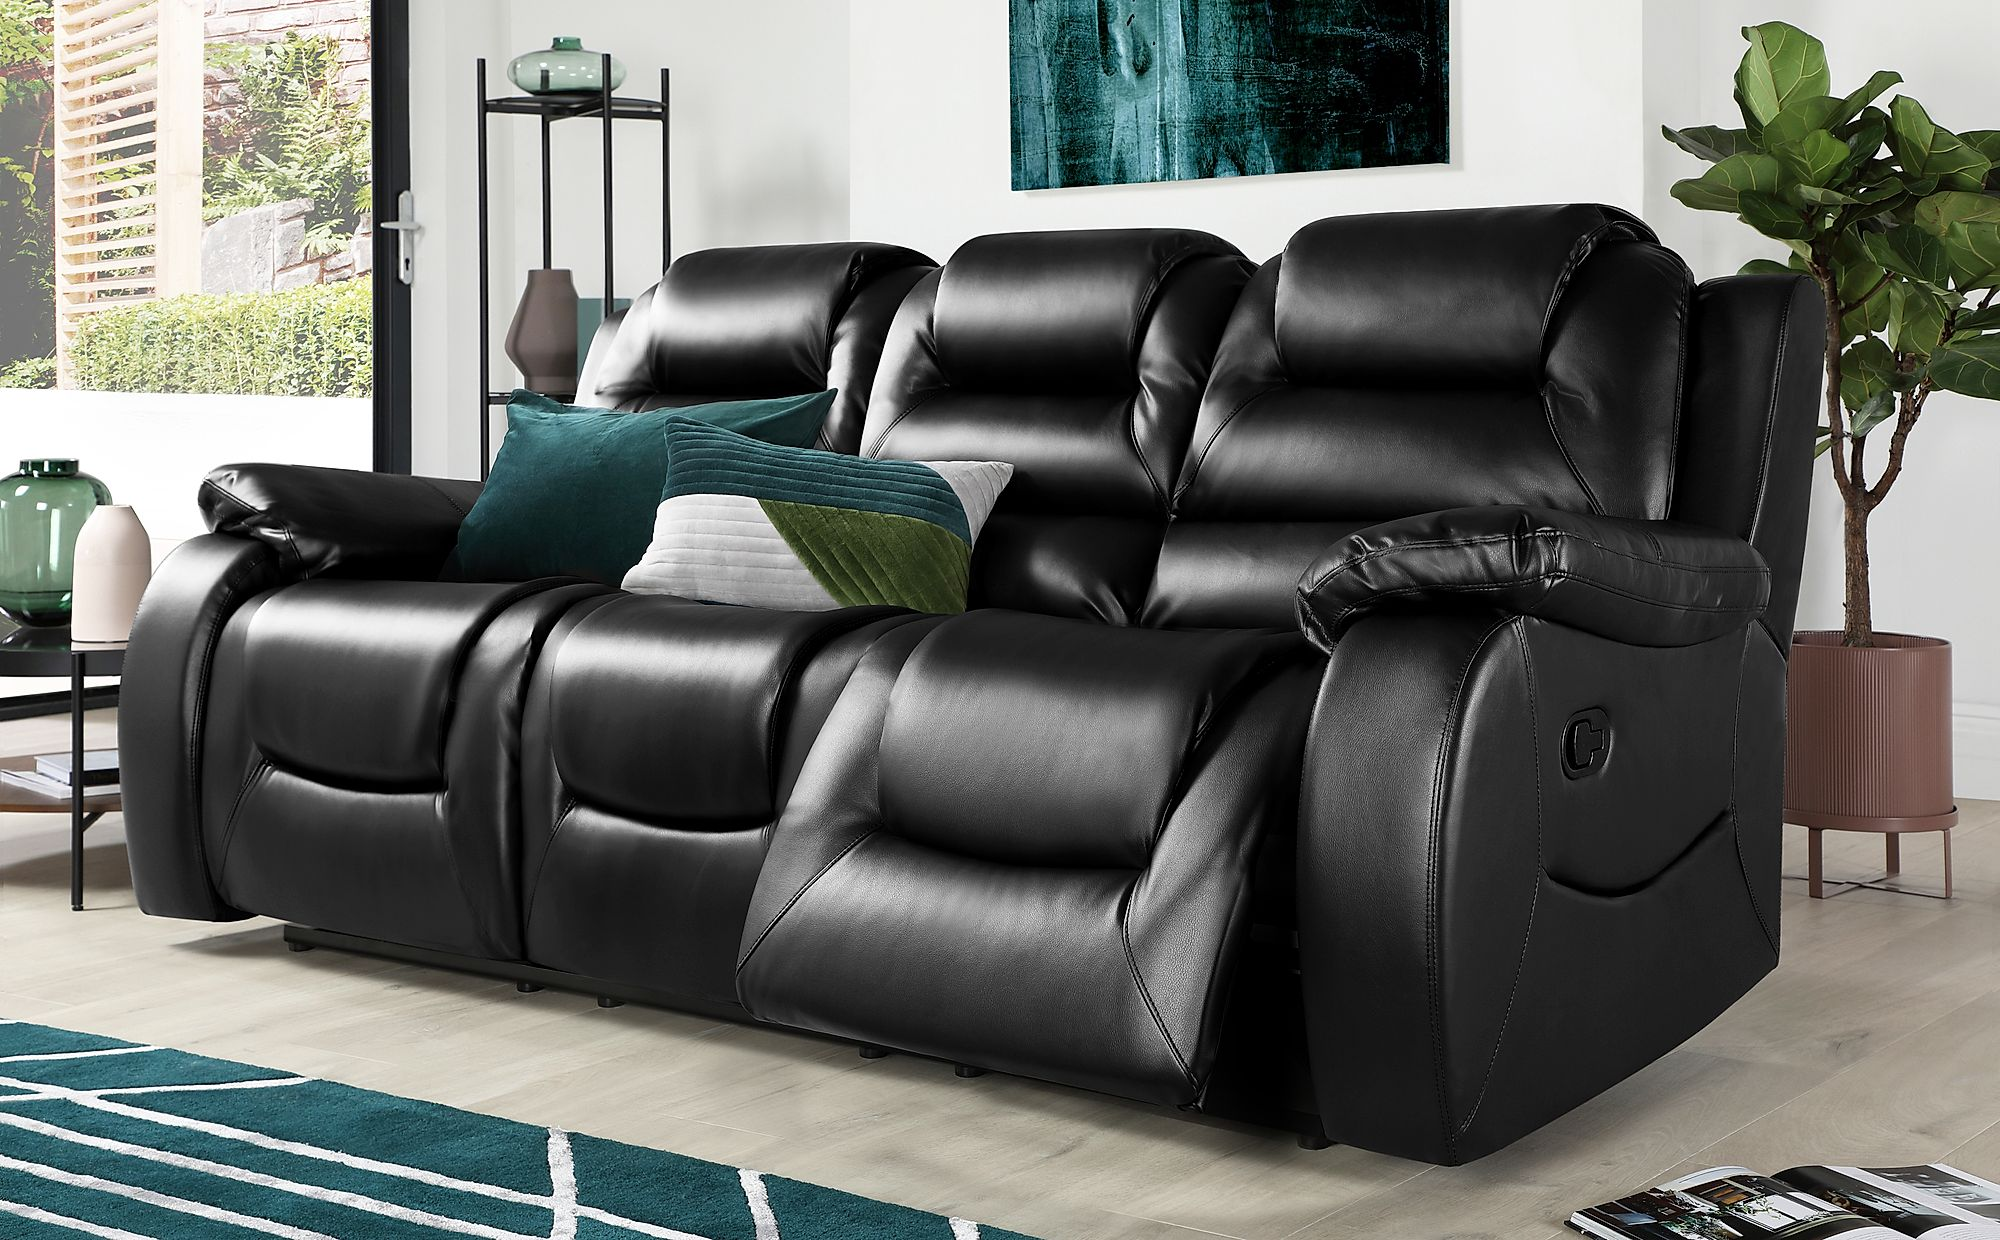 Vancouver Black Leather 3 Seater Recliner Sofa